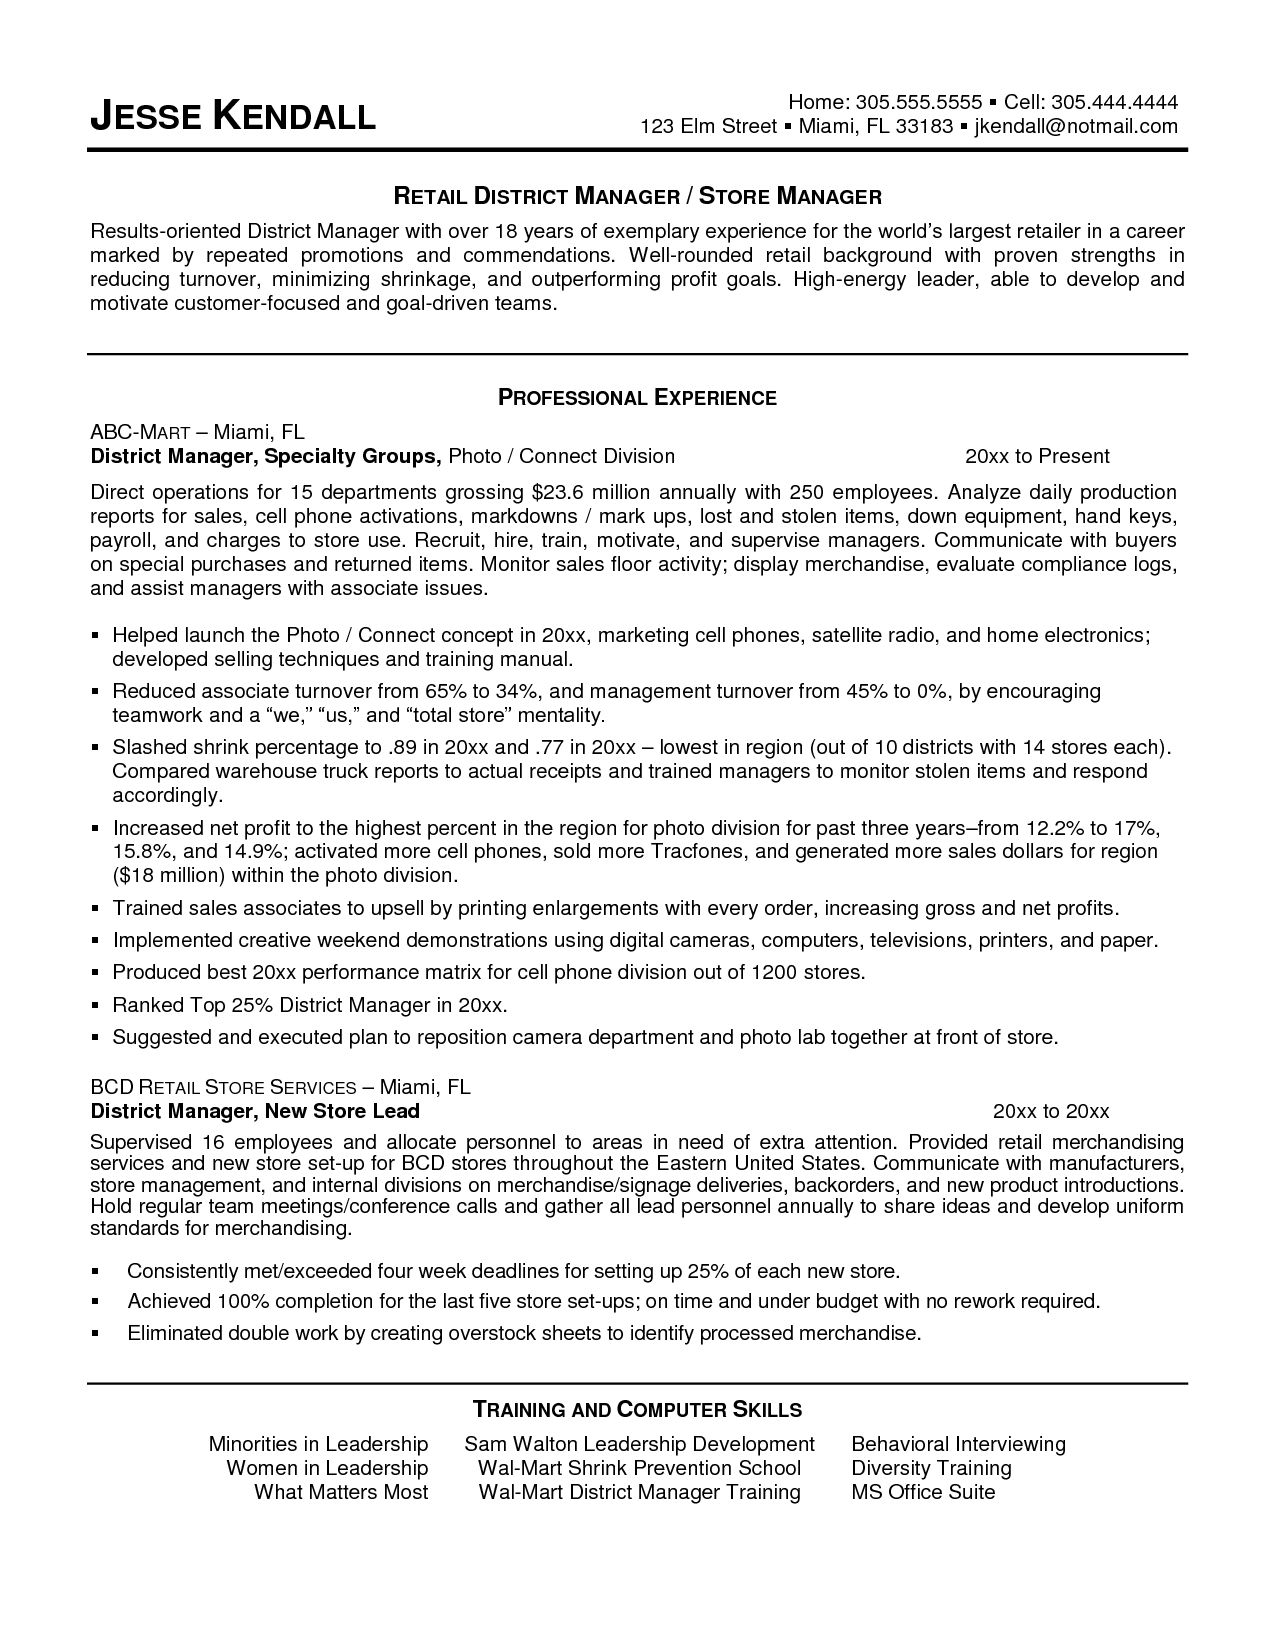 District Manager Resume Sample For Retail Store Examples Letter